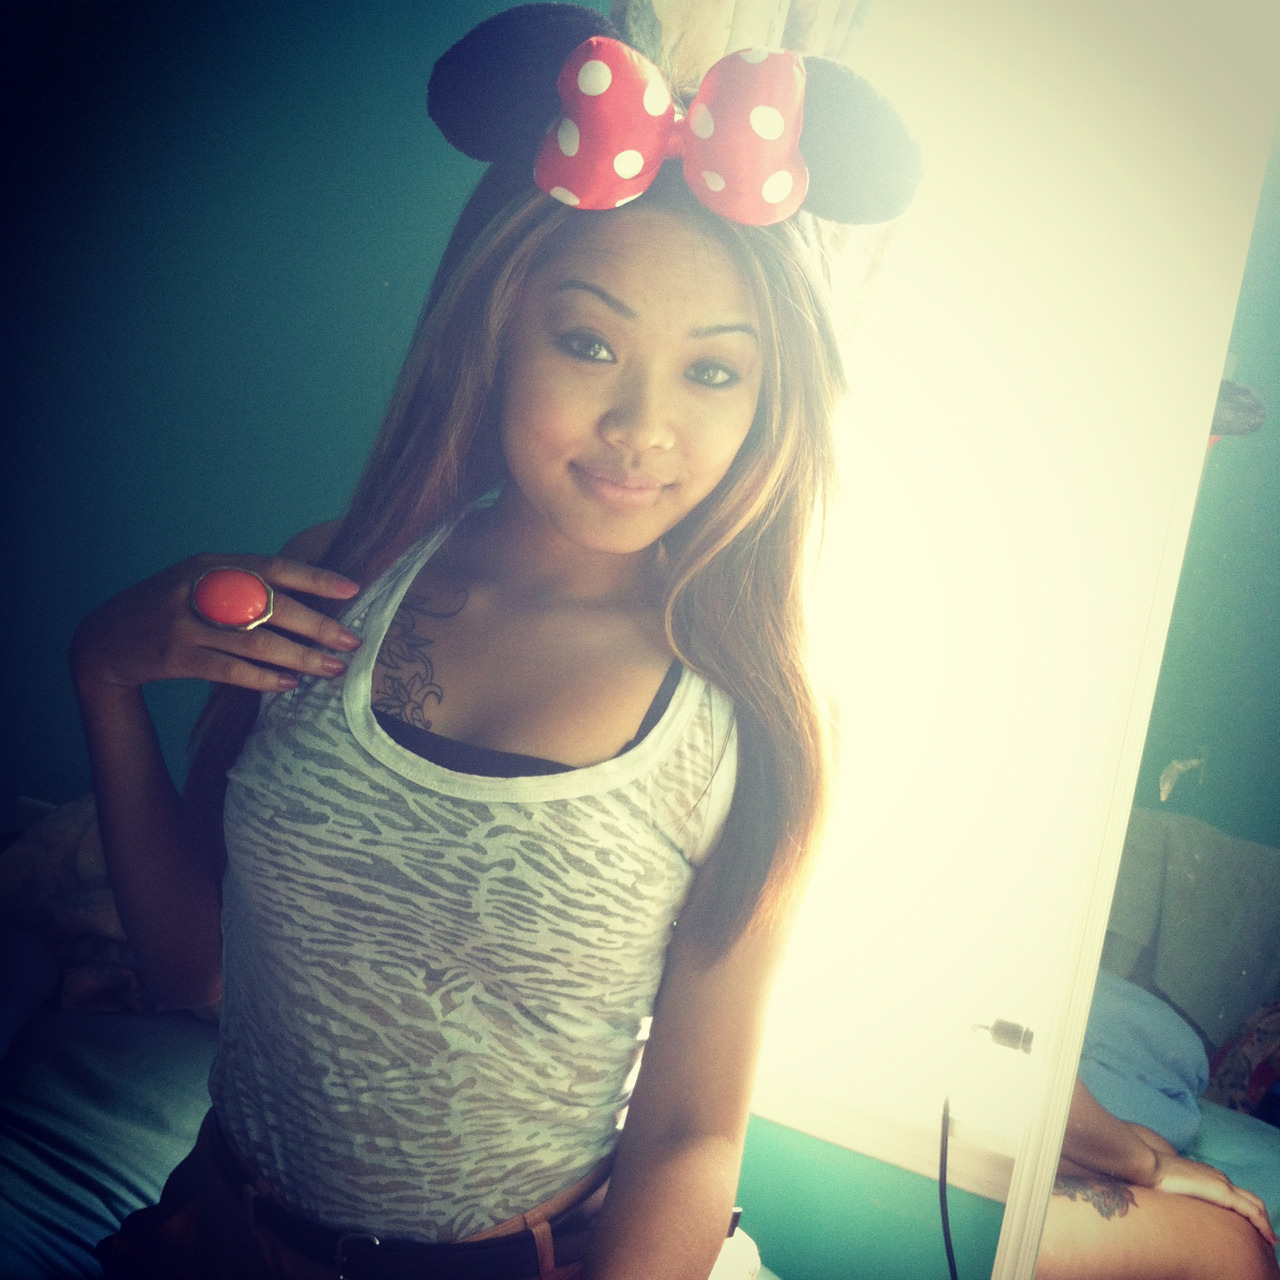 The new Minnie mouse